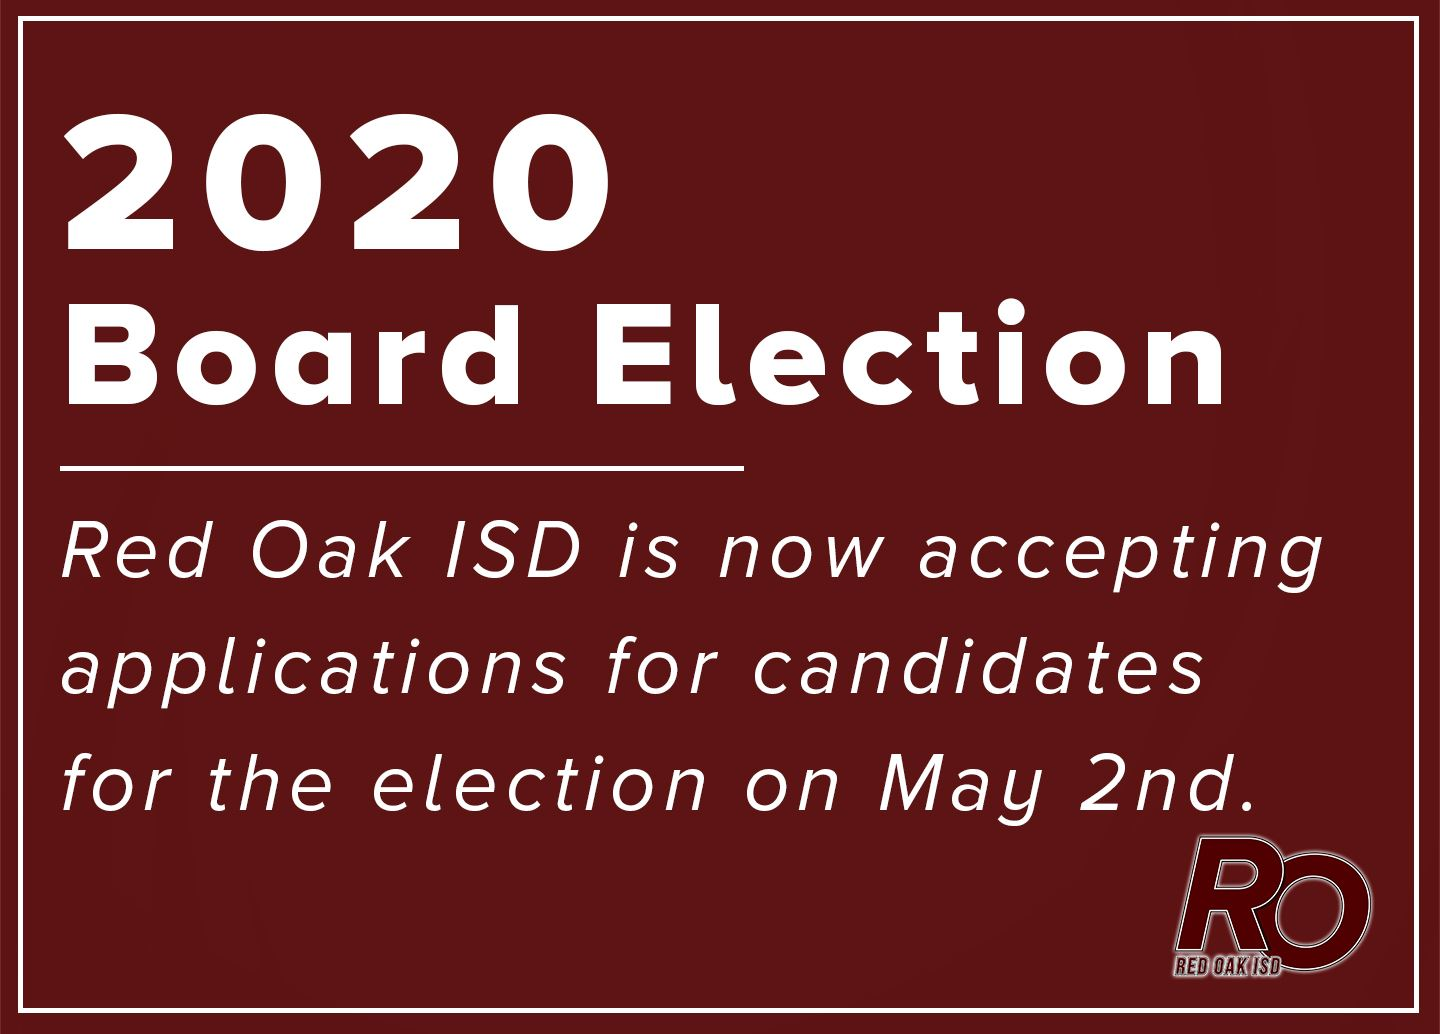 2020 Board Election:  ROISD is now accepting applications for candidates for the election on May 2nd